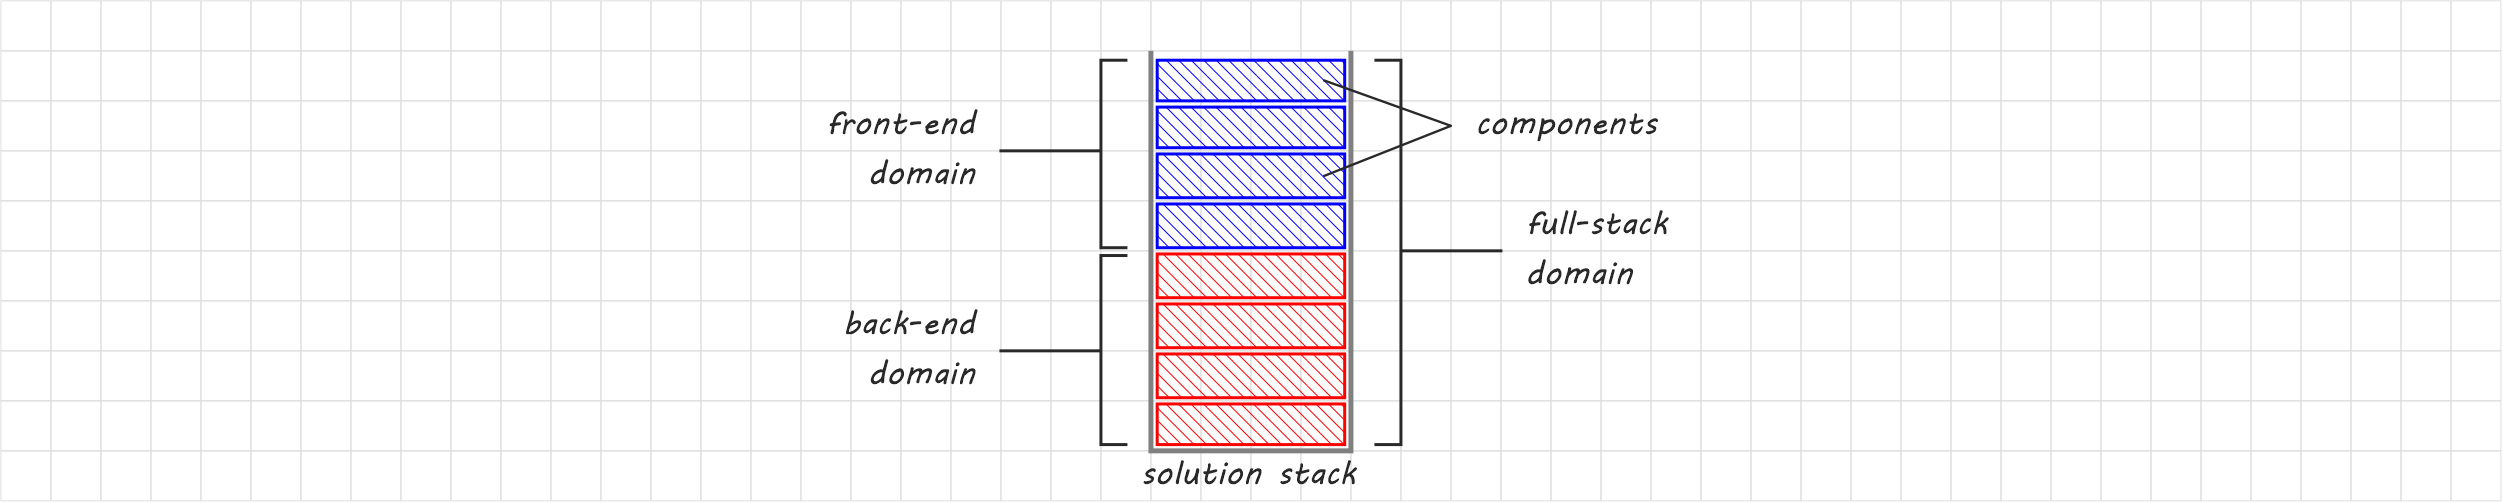 Generic stack solution scheme with back end and front end components and domain of the three types of developers.